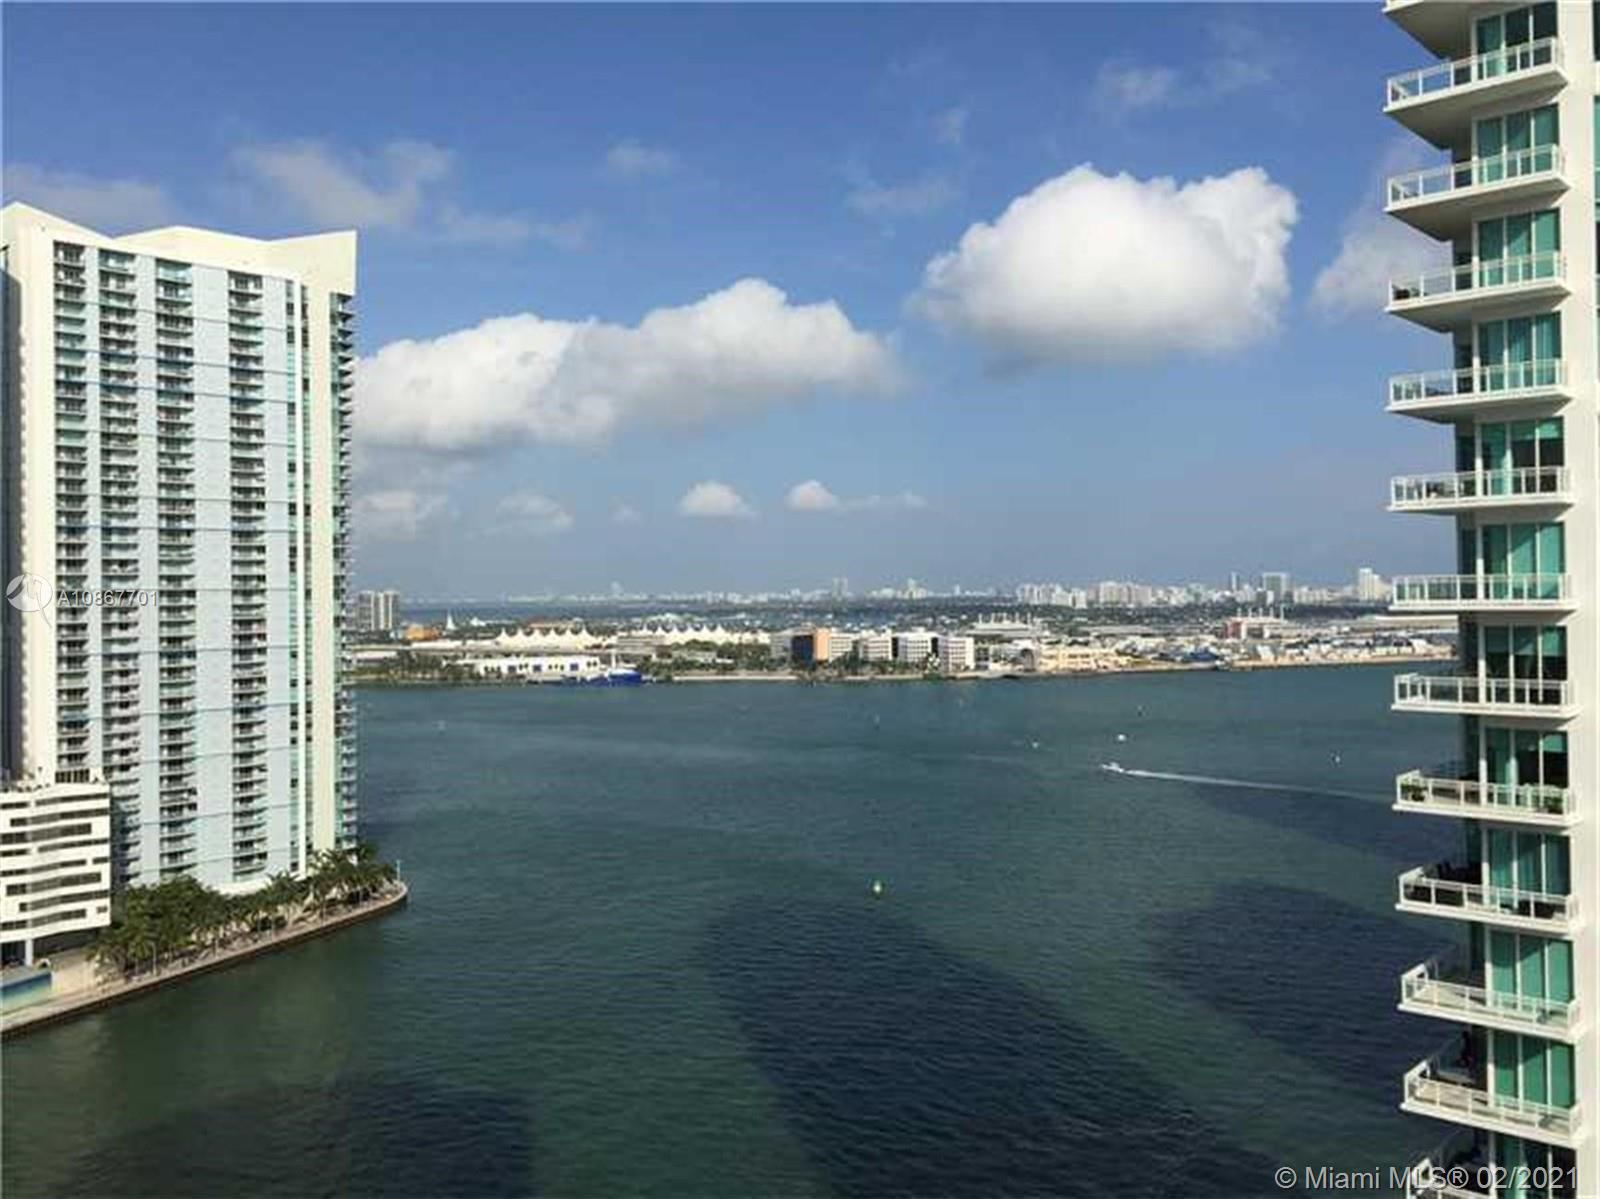 Spectacular house in the Sky! Oversized corner unit with spectacular views of Miami. This four bedroom four and a half bath unit comes with marble thru out large chefs kitchen with large breakfast area. Finished out closets. Glass enclosures in all tubs. Two parking spaces, Storage Unit. Carbonell features state of the art amenities. Two tennis courts, 2 story gym, basketball, racquetball, sauna, heated, swimming pool, concierge, free valet, recently renovated common areas.